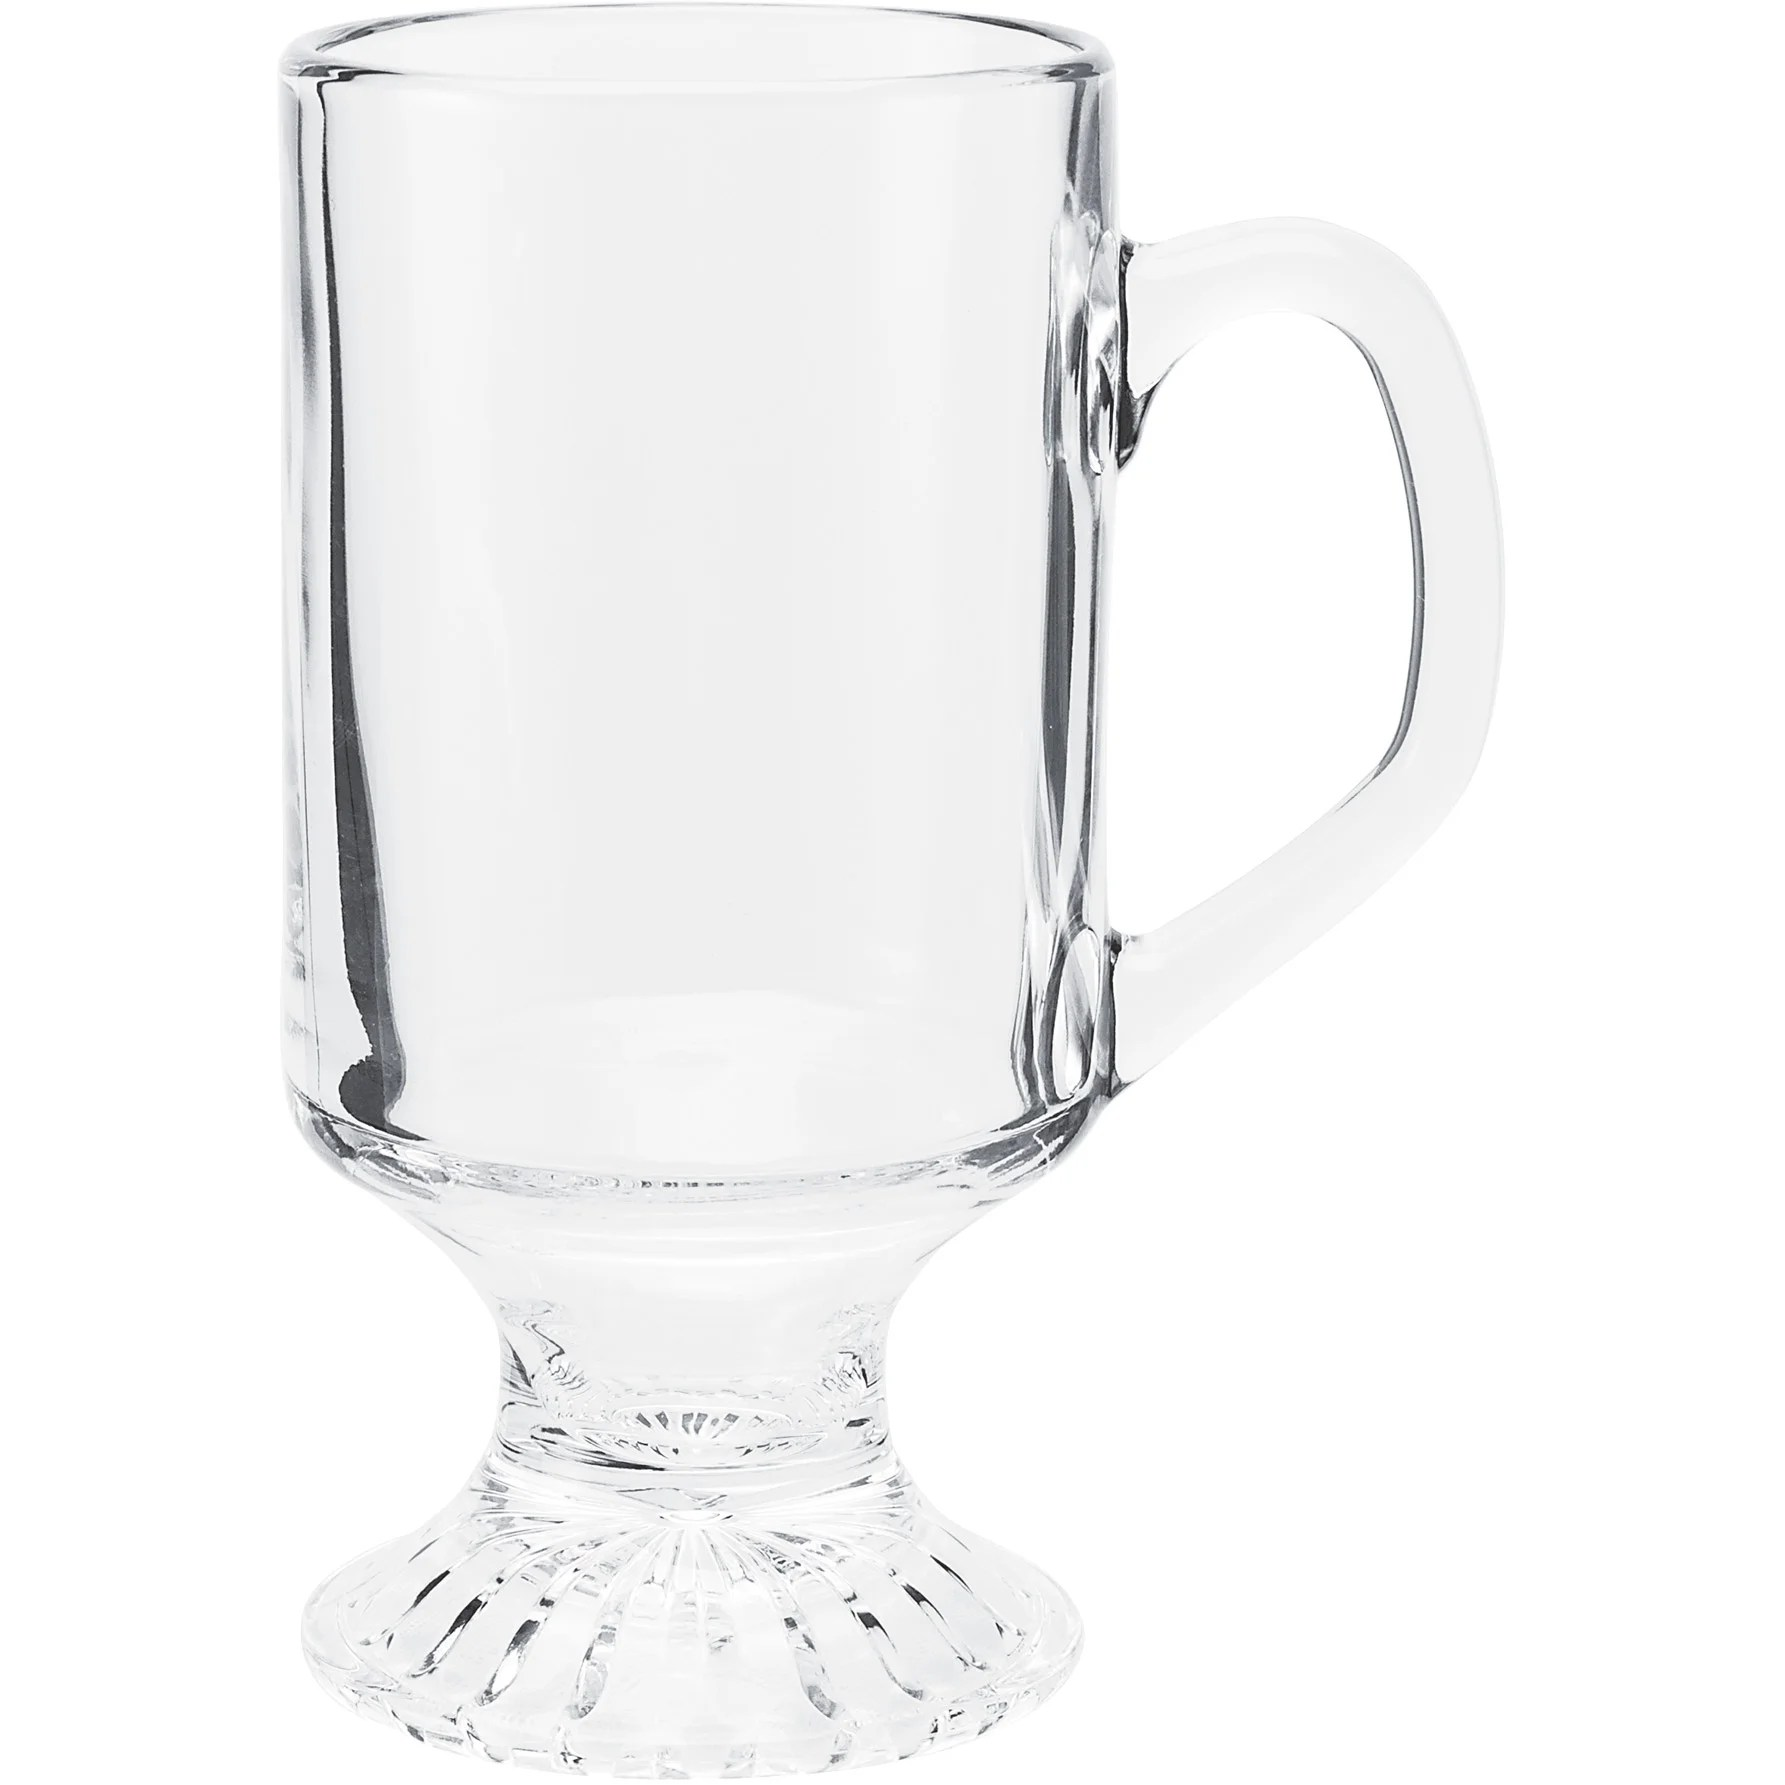 Irish Coffee Glass Mugs 10 Oz